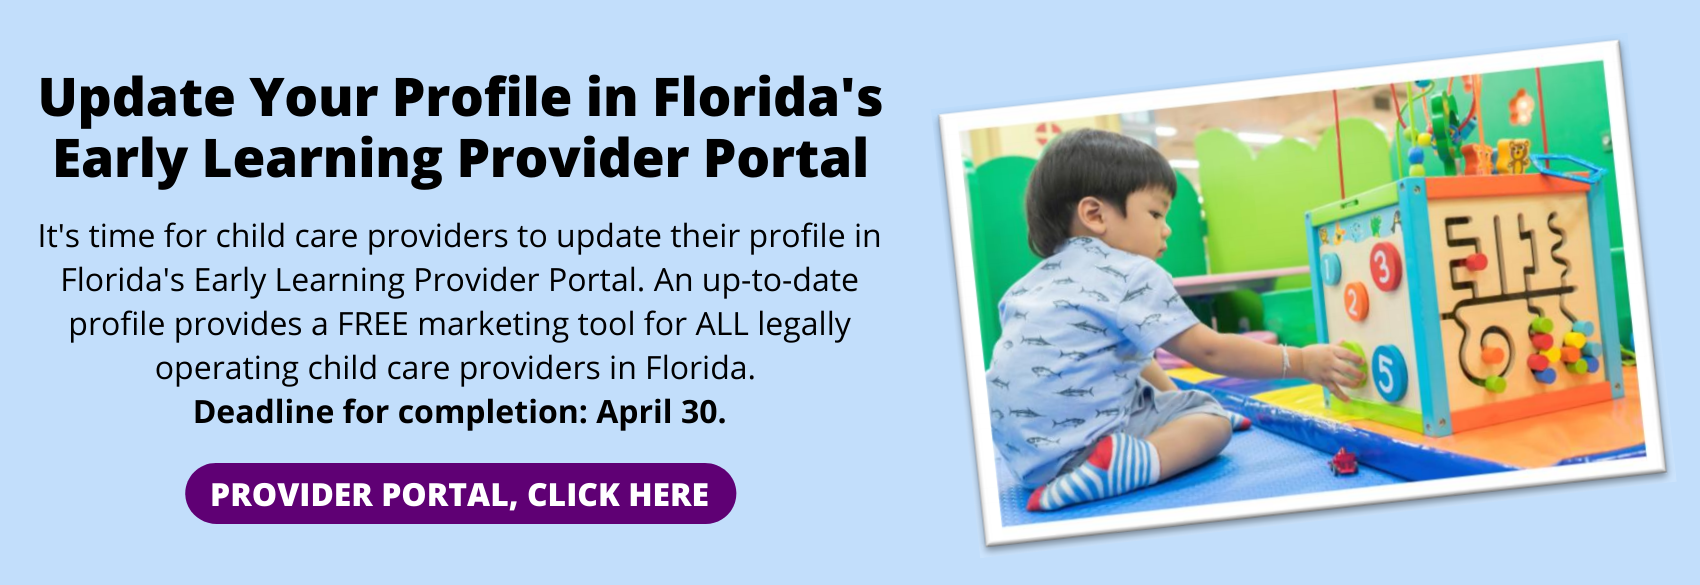 It's time for child care providers to update their profile in Florida's Early Learning Provider Portal. An up-to-date provides a FREE marketing tool for ALL legally operating child care providers in Florida.